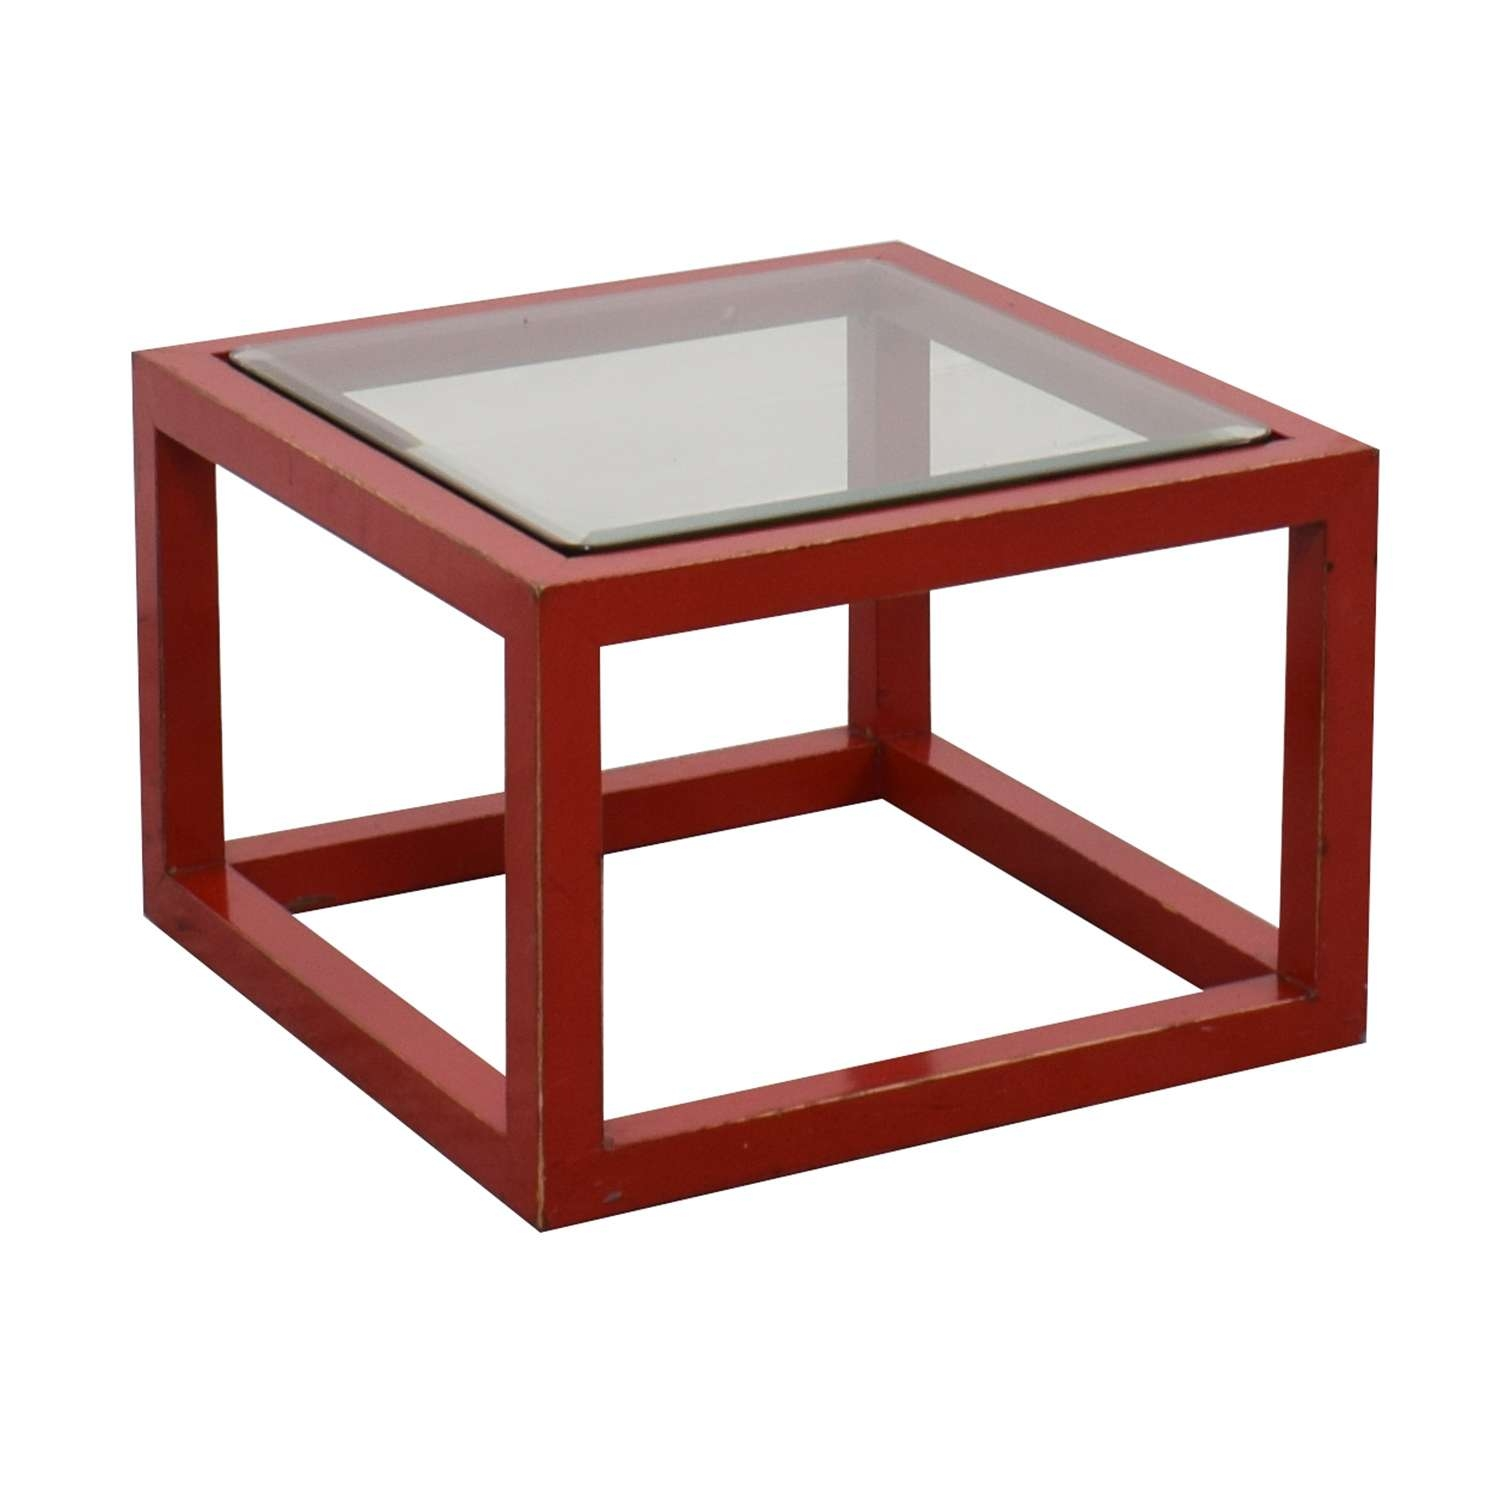 [%well Liked Red Coffee Tables Intended For 79% Off – Crate & Barrel Crate & Barrel Modern Glass Top Red|79% Off – Crate & Barrel Crate & Barrel Modern Glass Top Red Within Most Recently Released Red Coffee Tables%] (View 20 of 20)